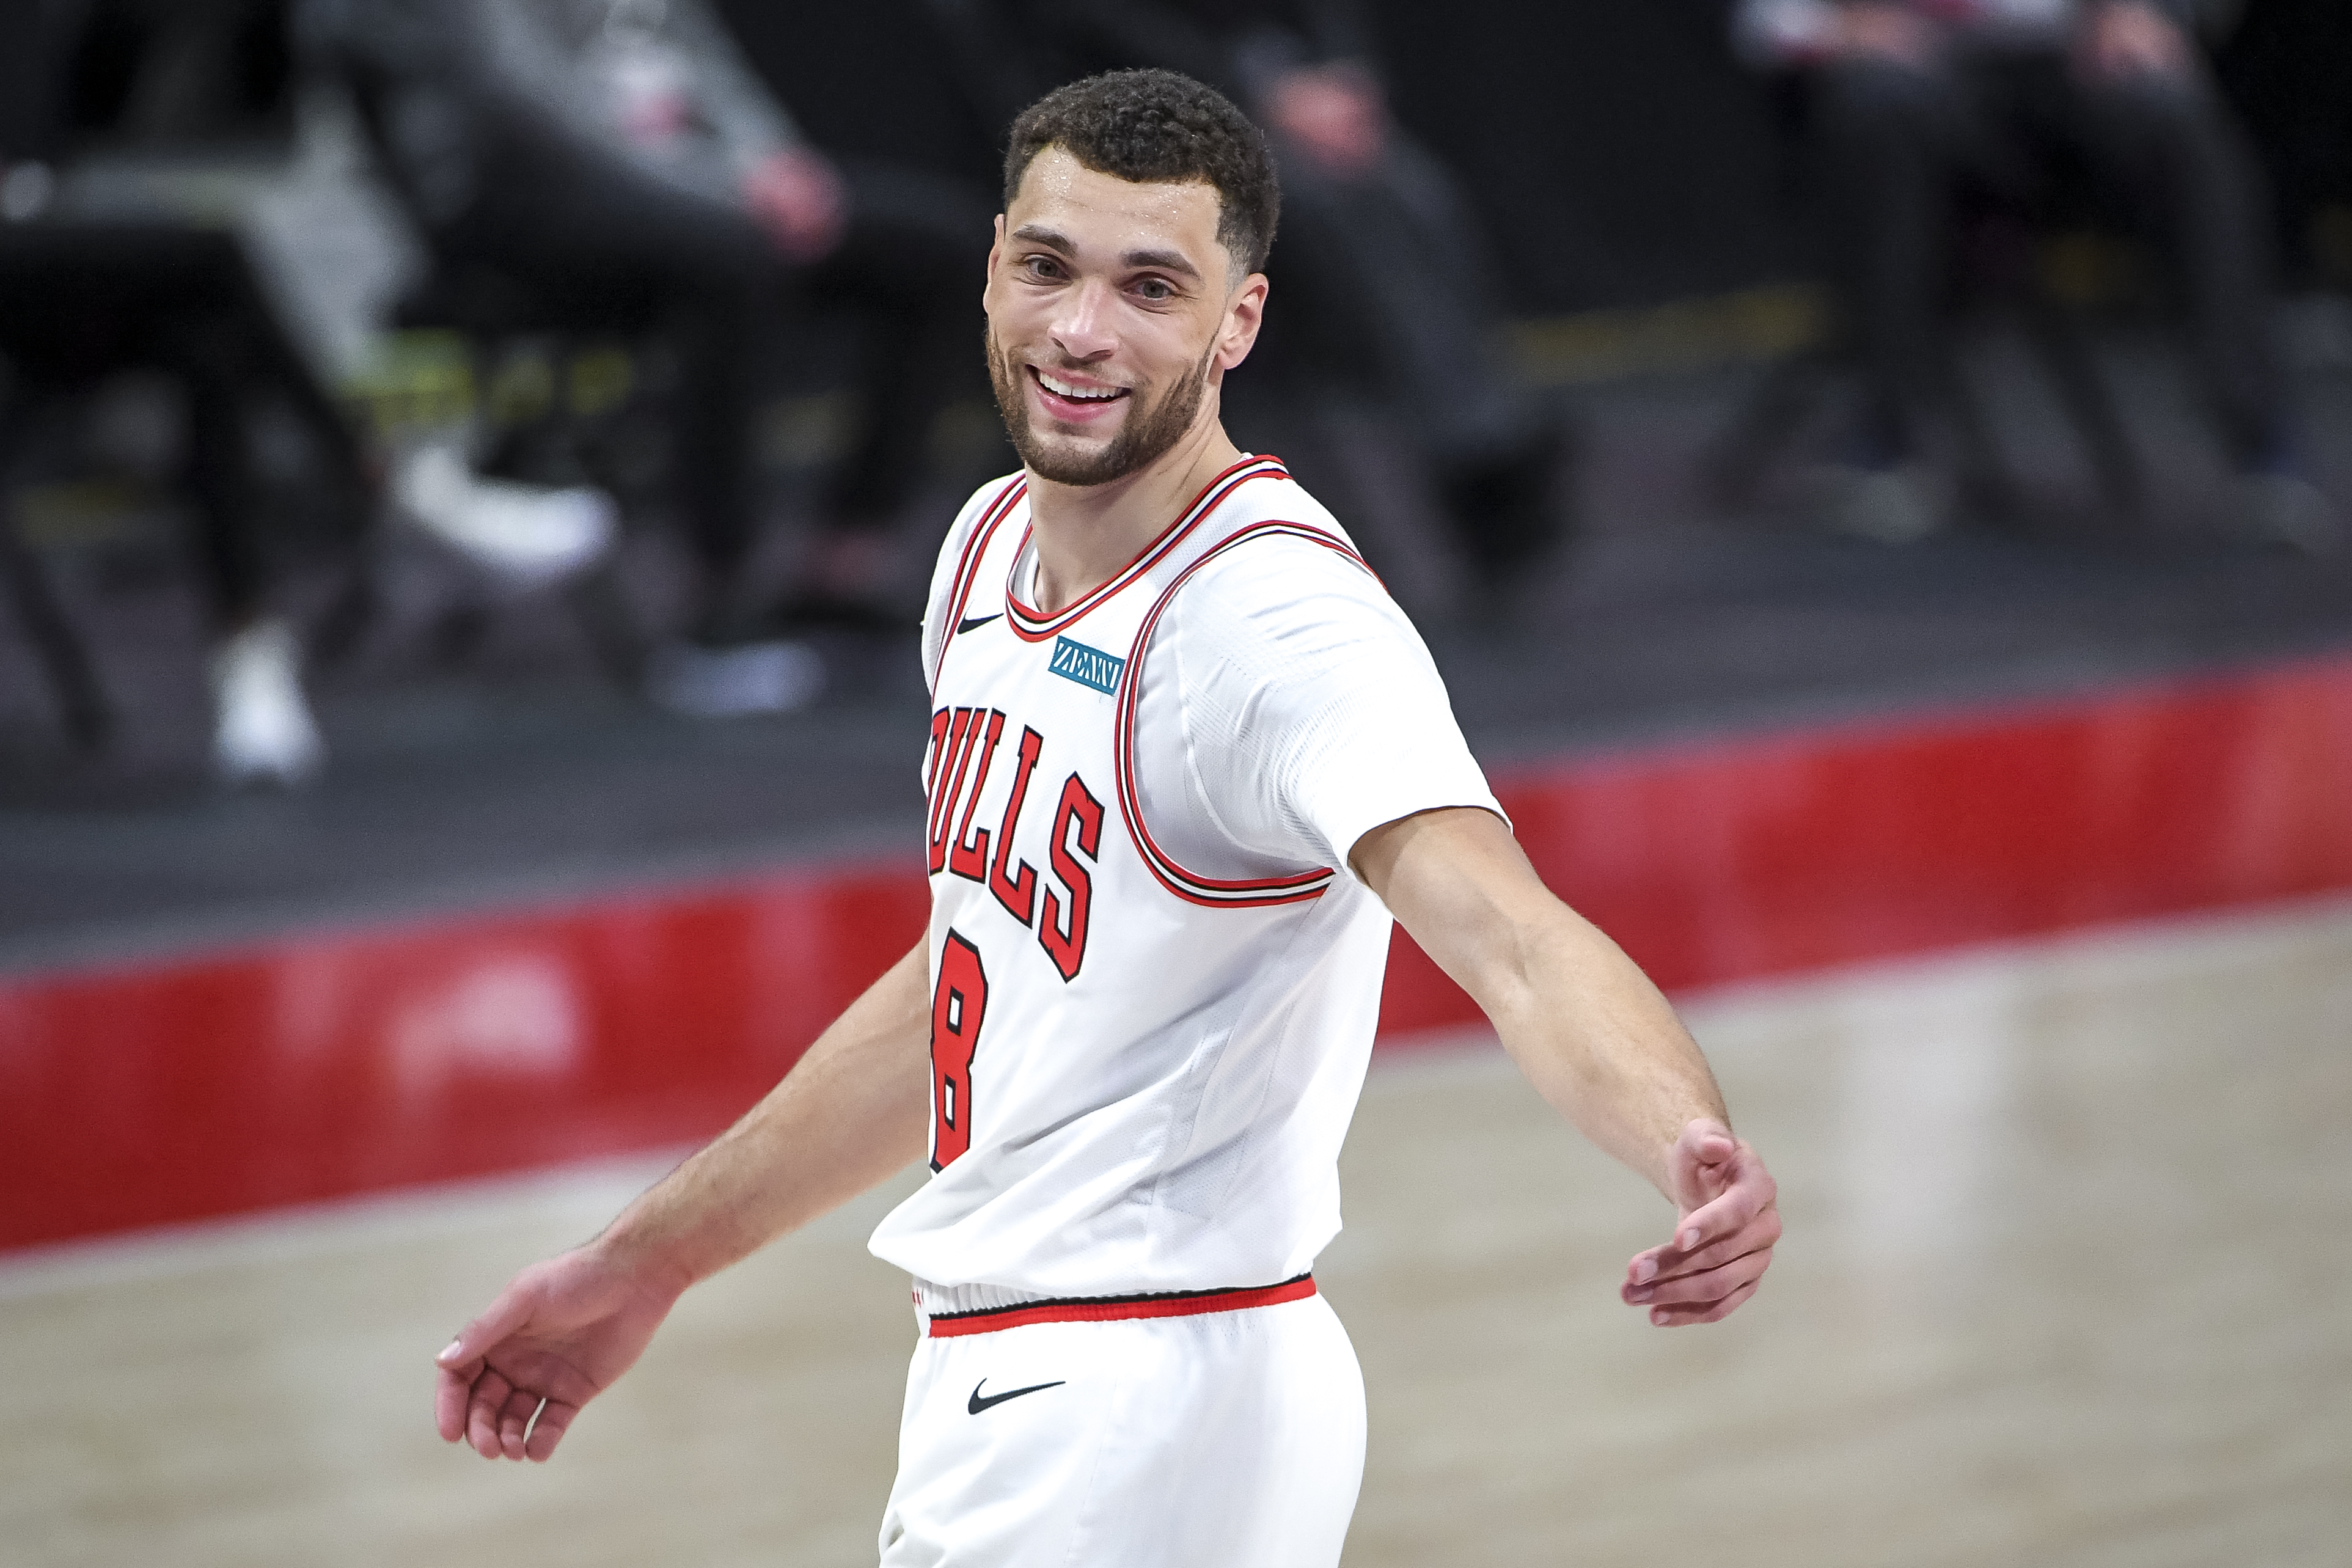 Zach LaVine #8 of the Chicago Bulls smiles during the second quarter of the NBA game against the Detroit Pistons at Little Caesars Arena on May 09, 2021 in Detroit, Michigan.